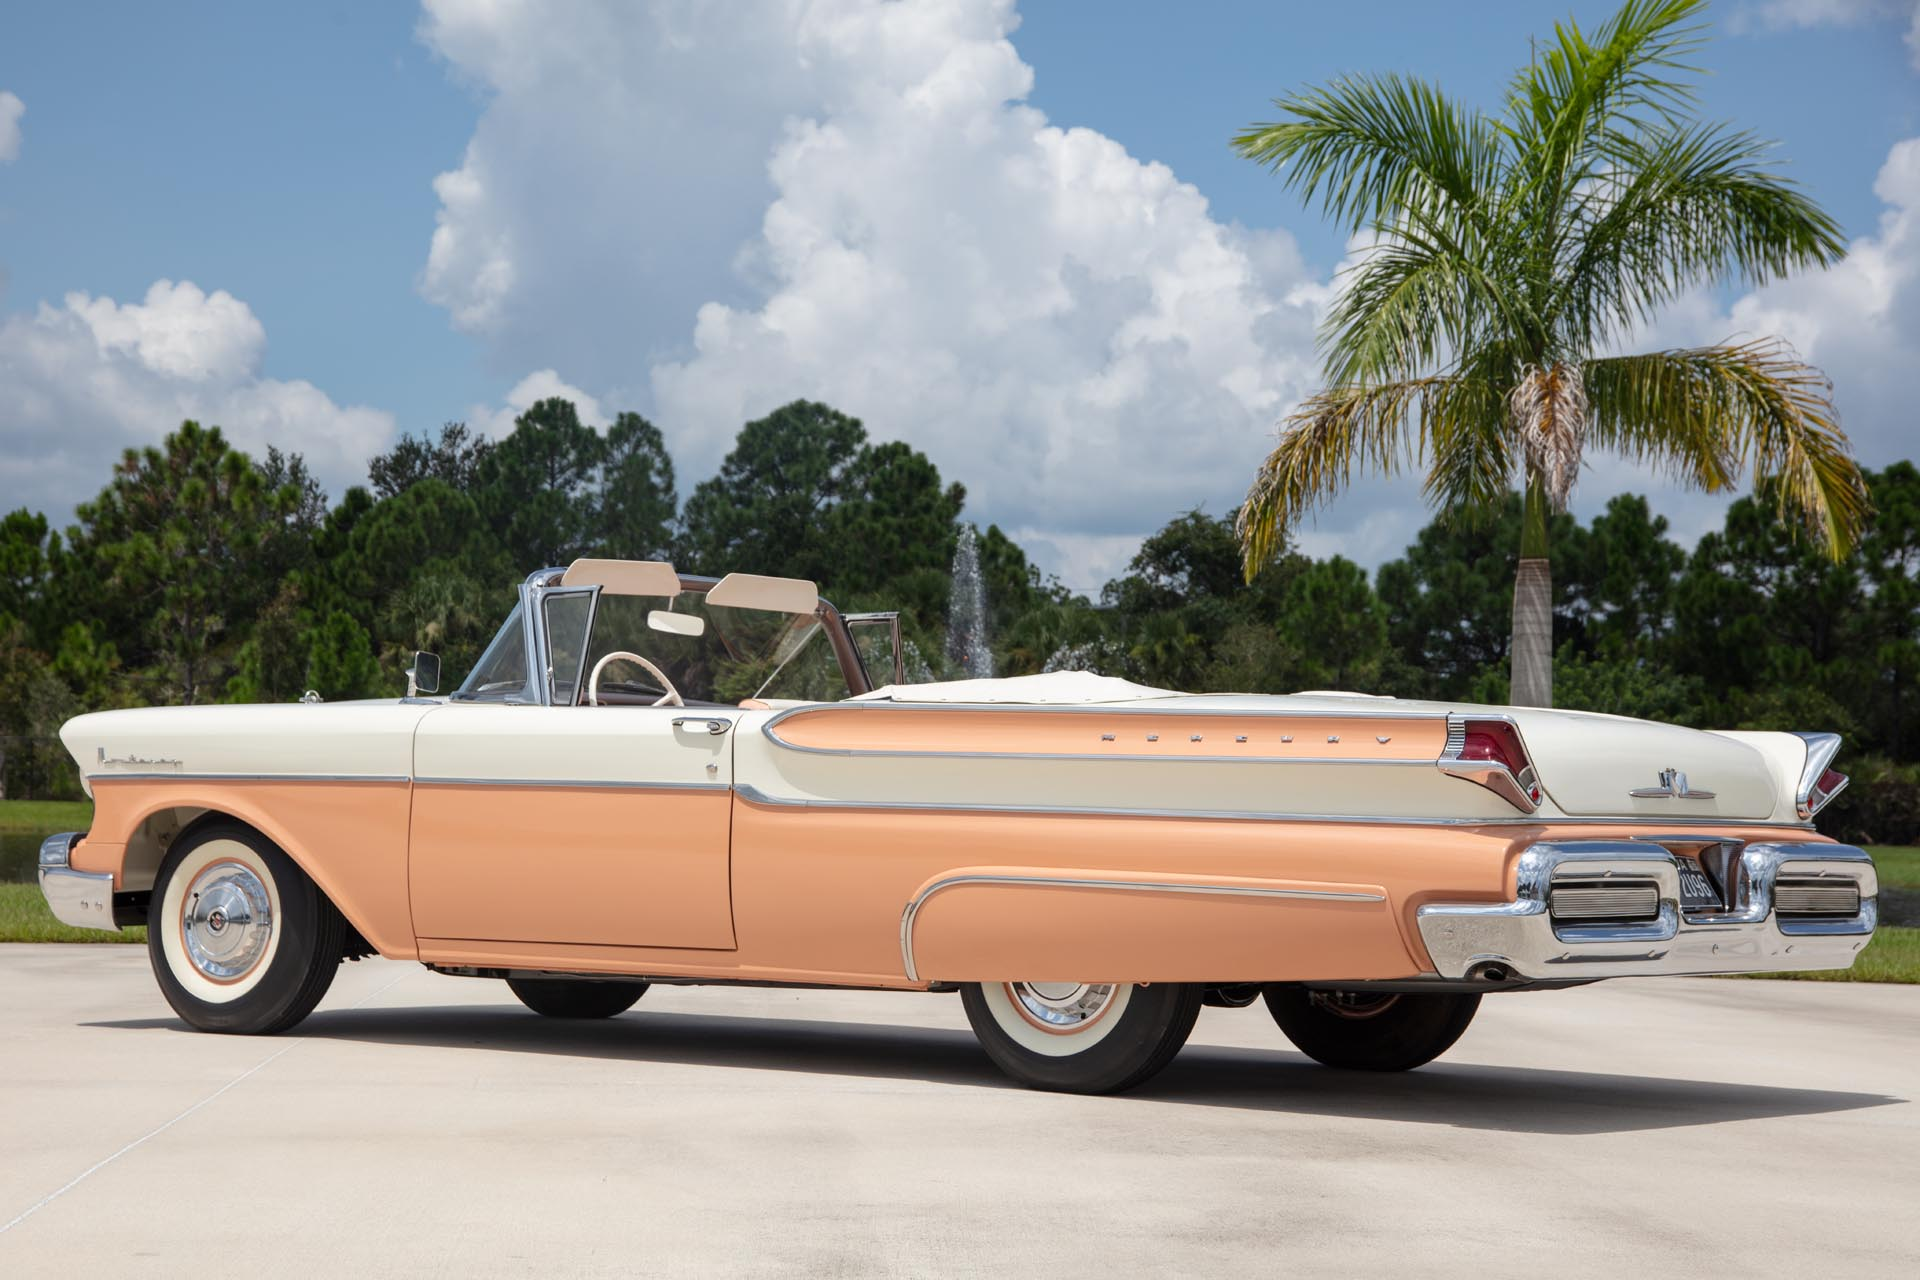 1957 Mercury Monterey Two-Door Convertible